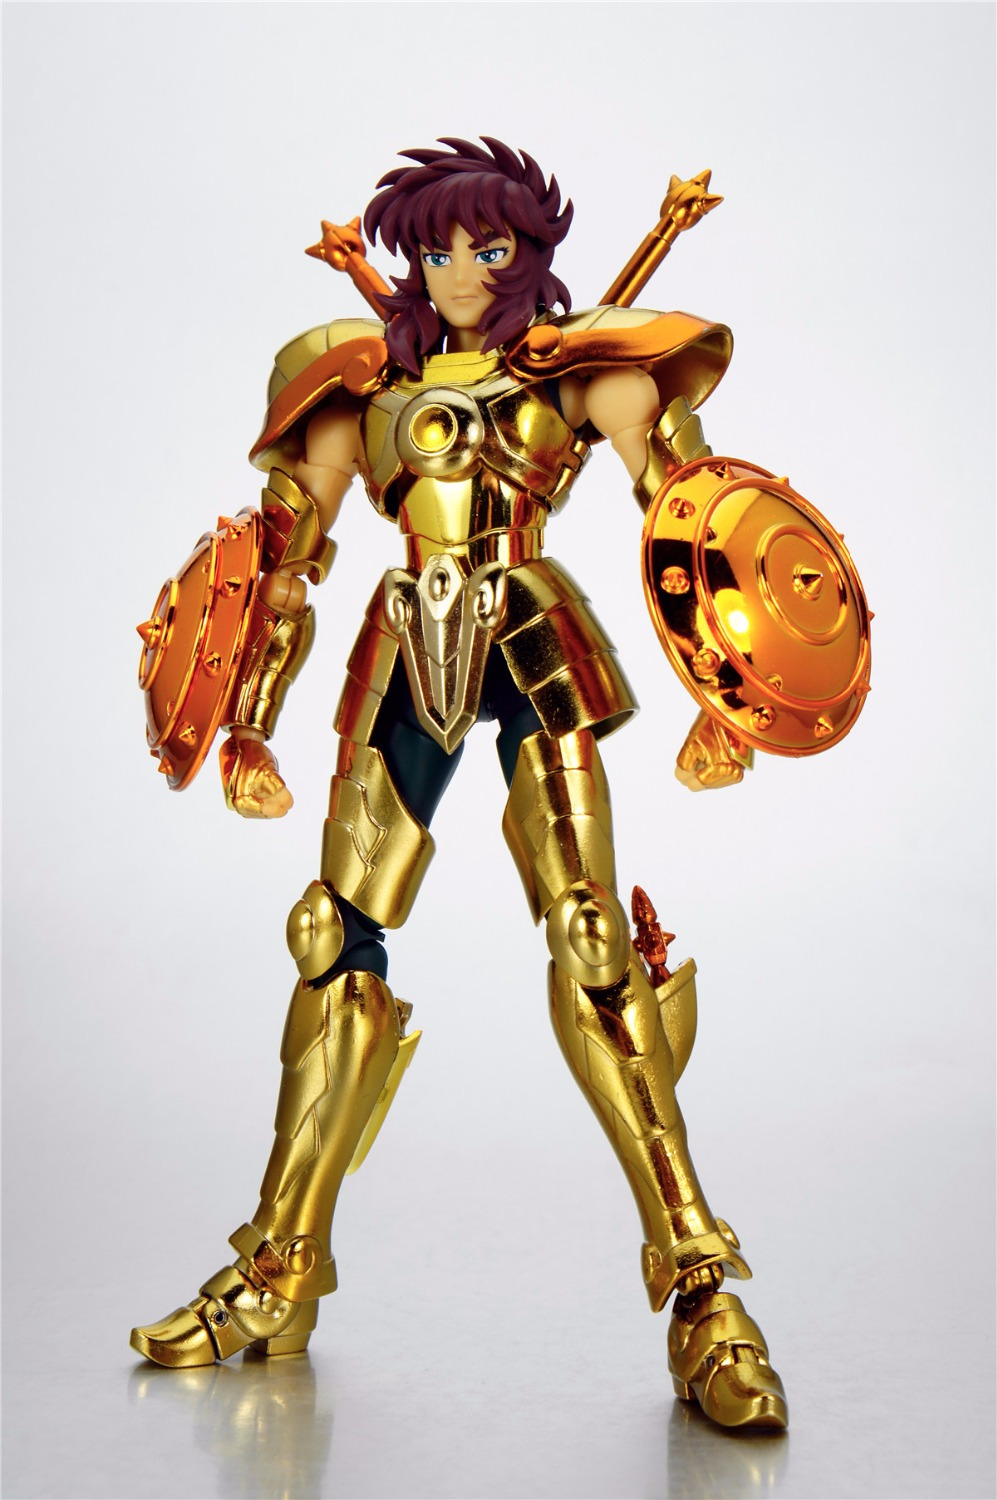 Speeding Model Libra Dohko action figure Saint Seiya Cloth Myth EX 2.0 metal armor CS Aurora model toy S13 diggro di03 plus bluetooth smart watch waterproof heart rate monitor pedometer sleep monitor for android & ios pk di02